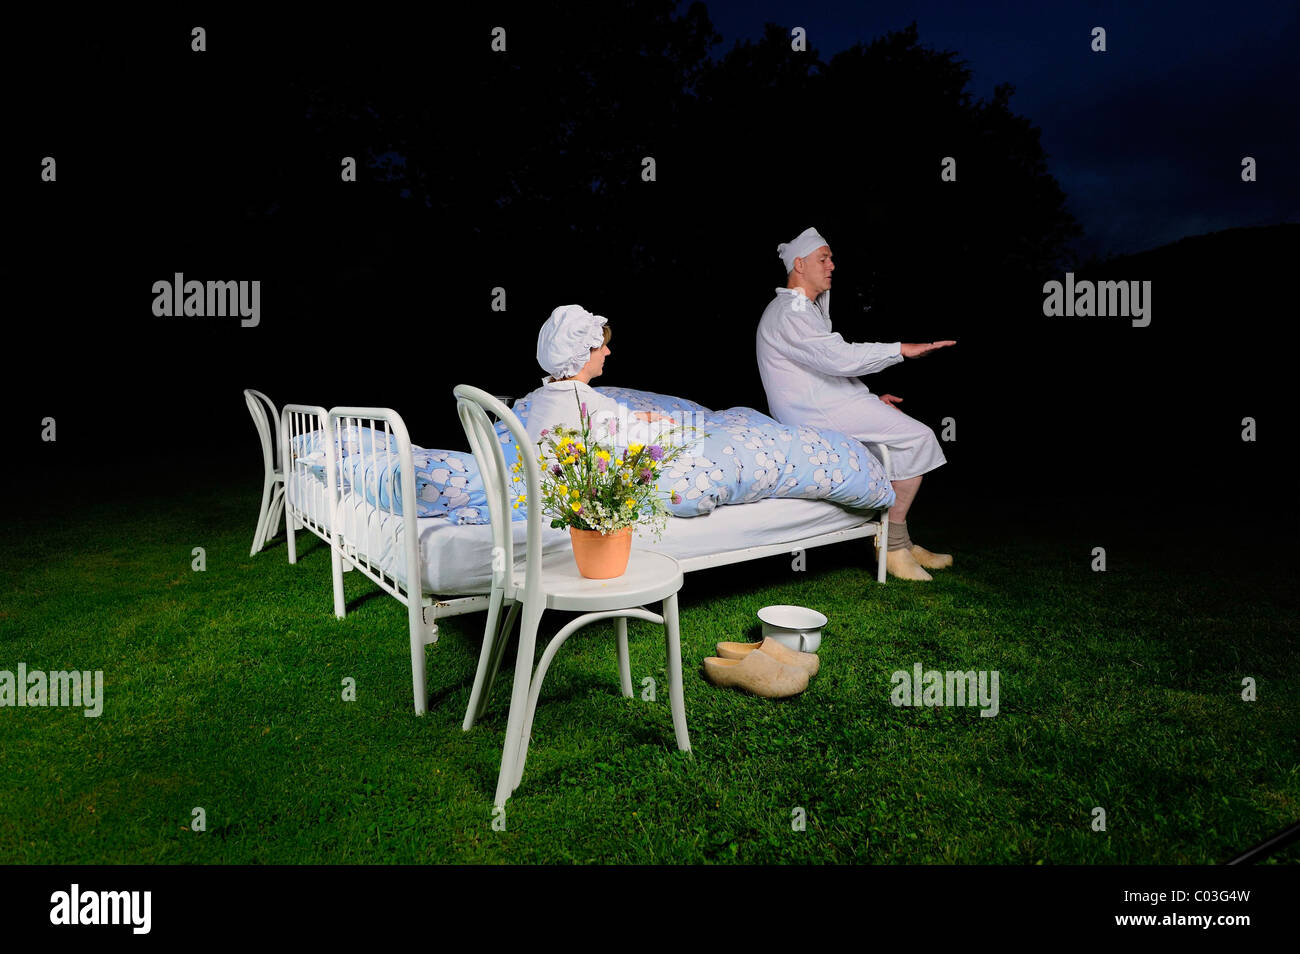 Boarders with nightgowns, nightcaps and chamber pot sleeping in the garden, Crazy Hotels, Pension Kamerichs boarding - Stock Image